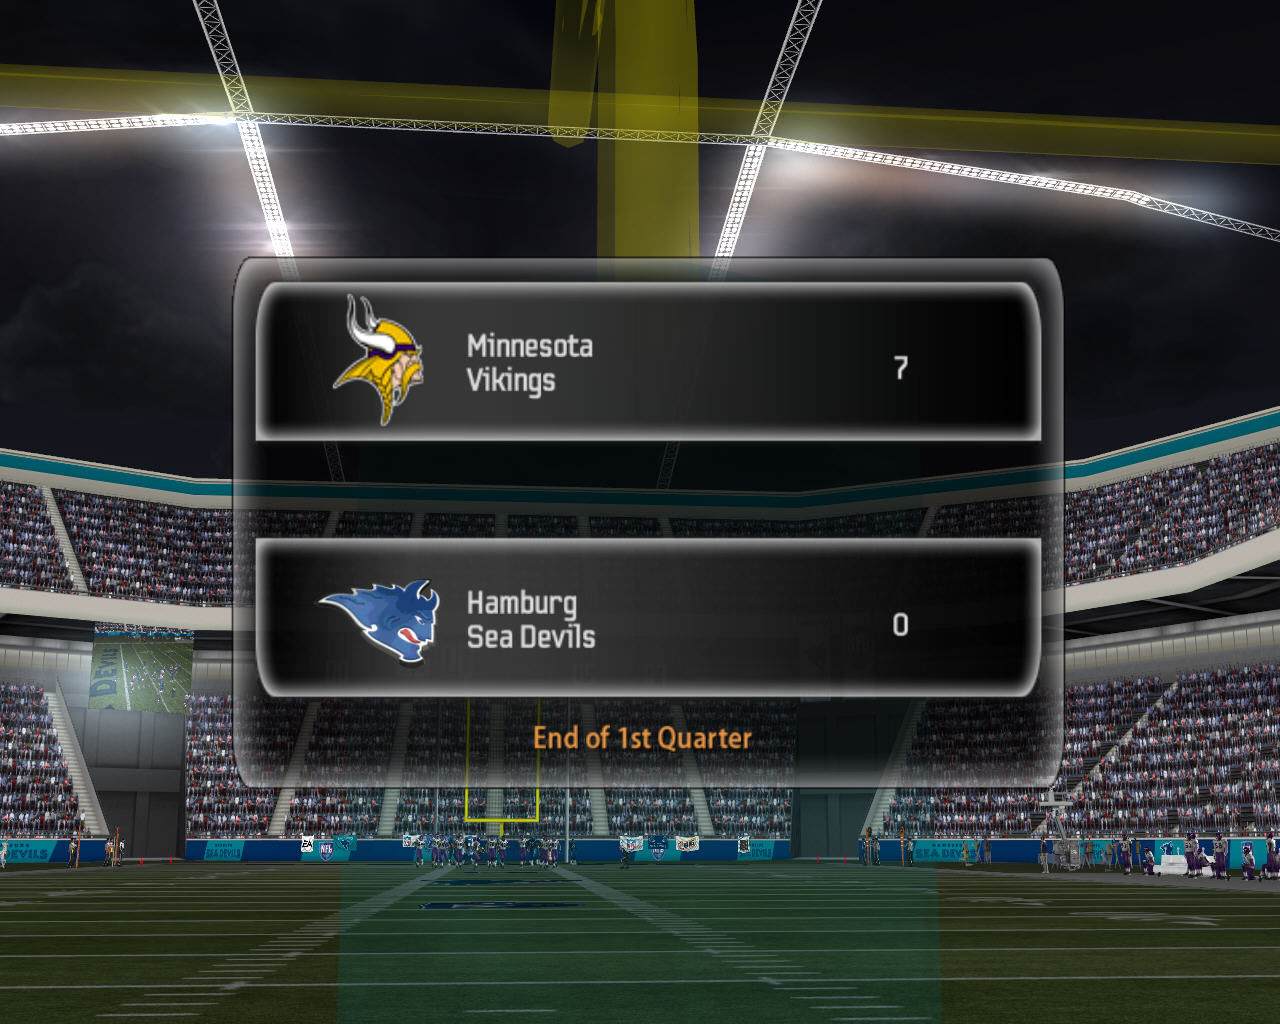 Madden NFL 07 Windows Match between Minnesota Vikings and Hamburg Sea Devils about to start